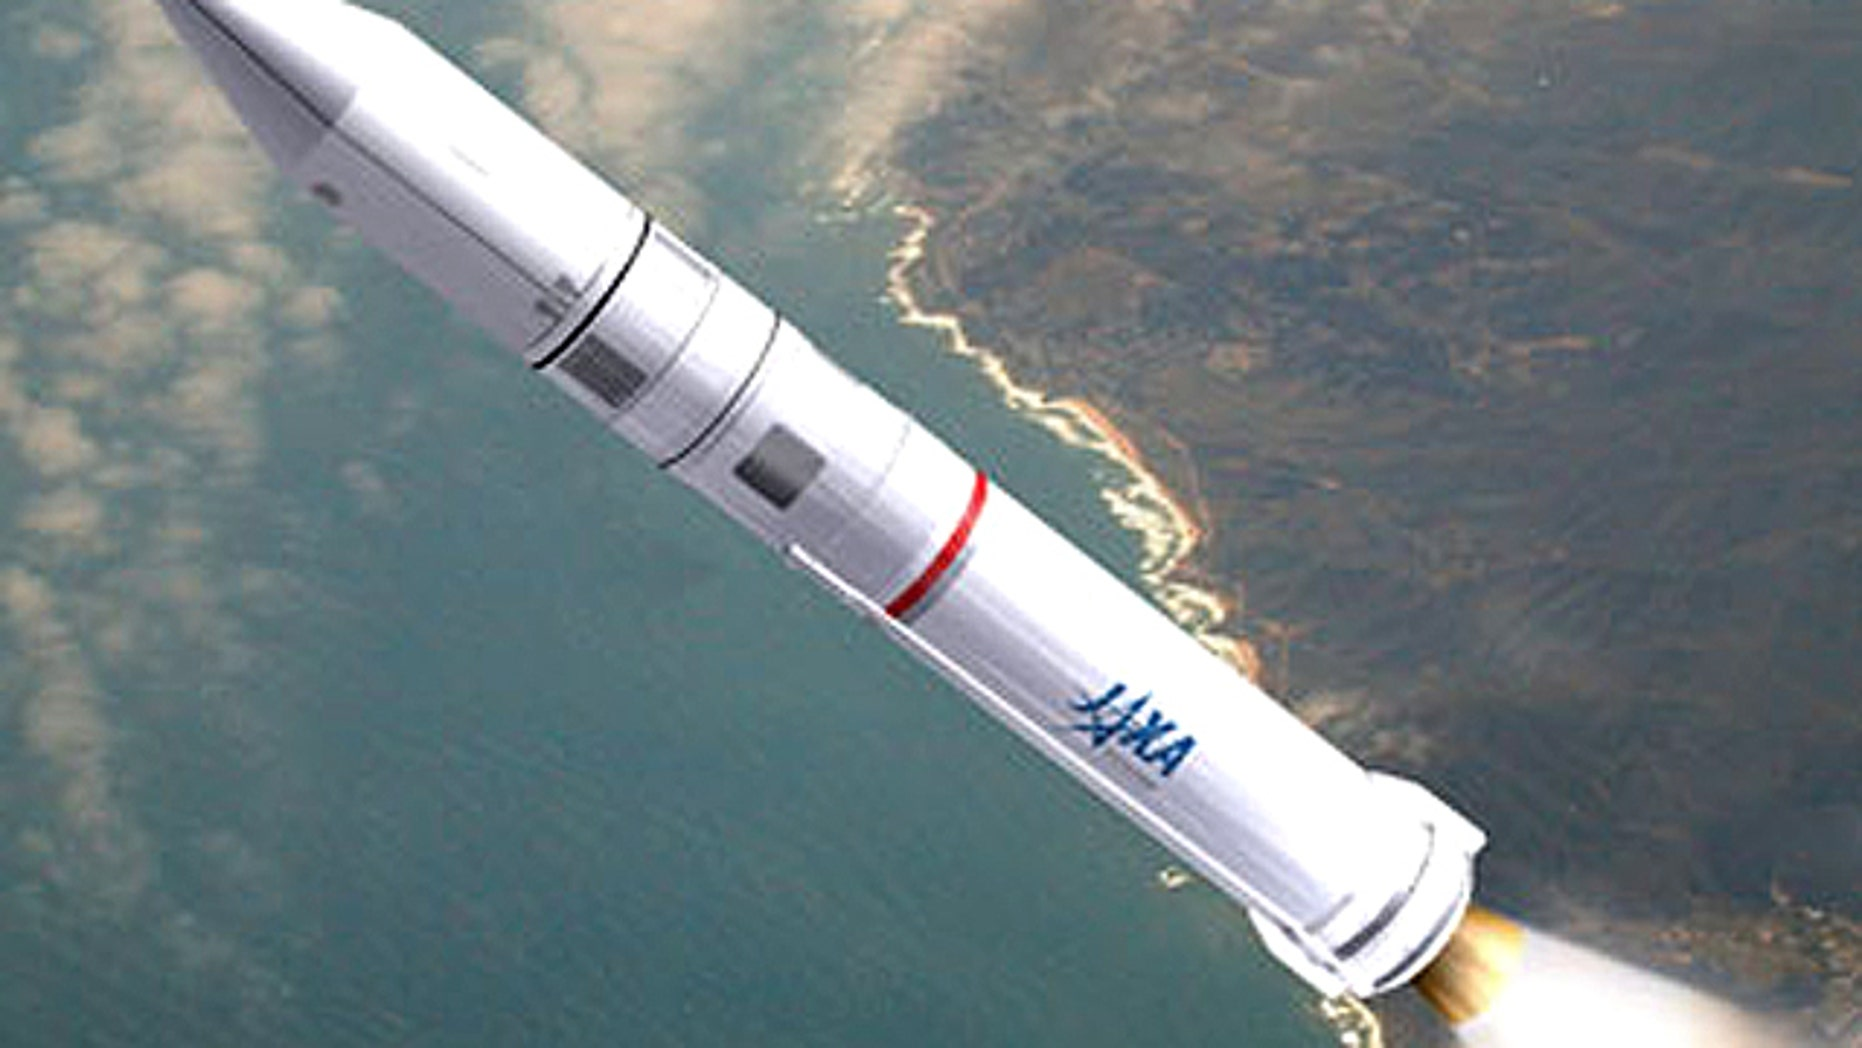 In an effort to lower cost and boost efficiency, Japan is building artifically intelligent heavy-lift rockets.